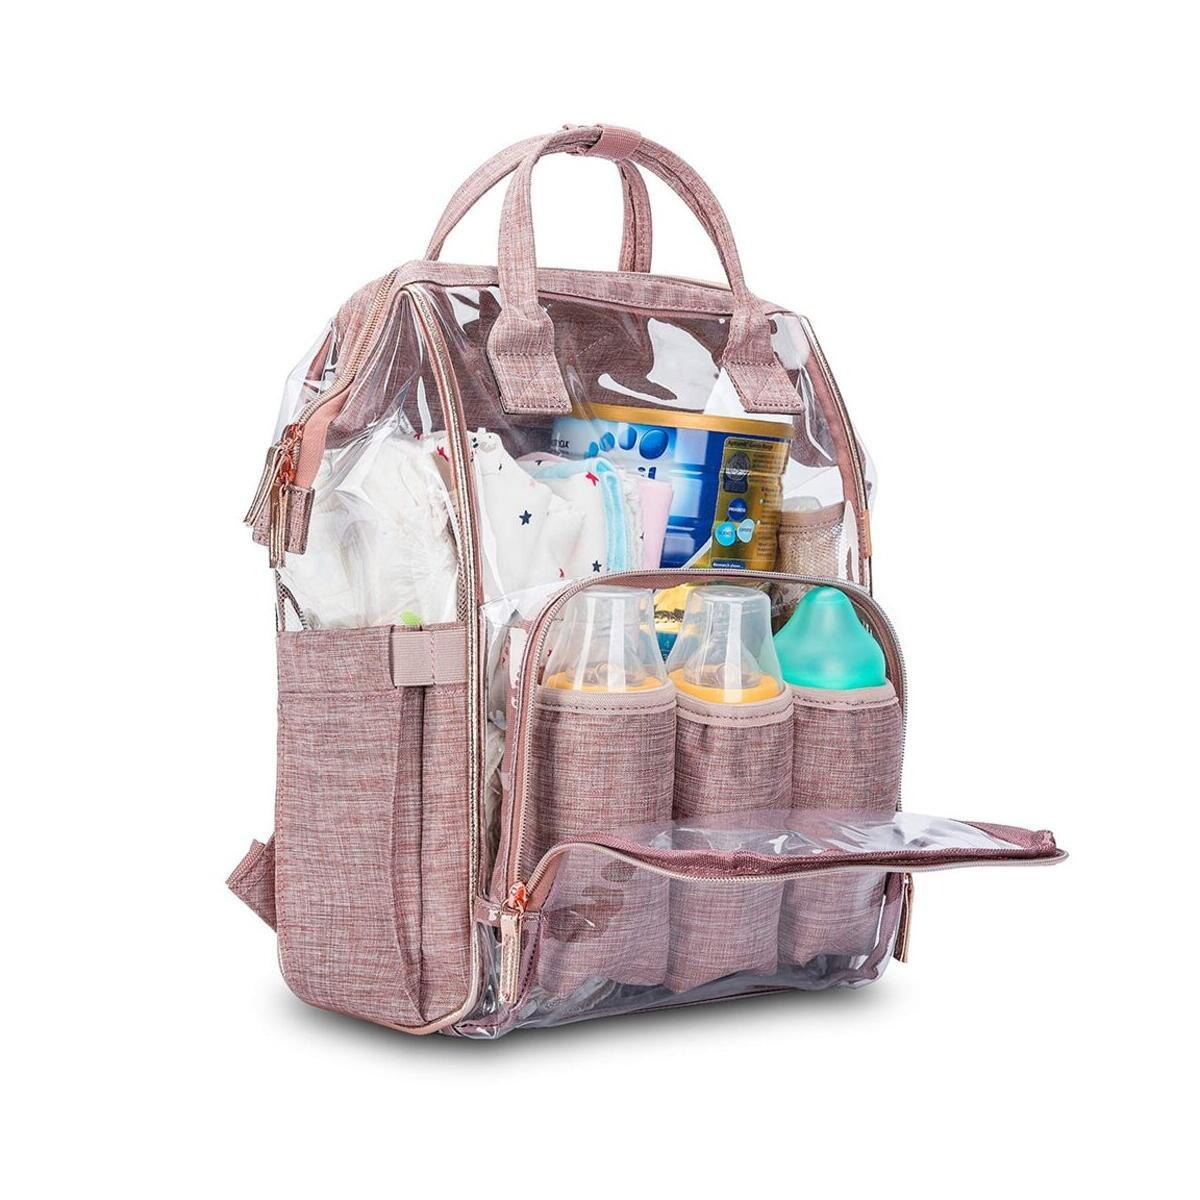 Clear Diaper Bag Backpack Transparent Nappy Bag with Changing Pad Pocket